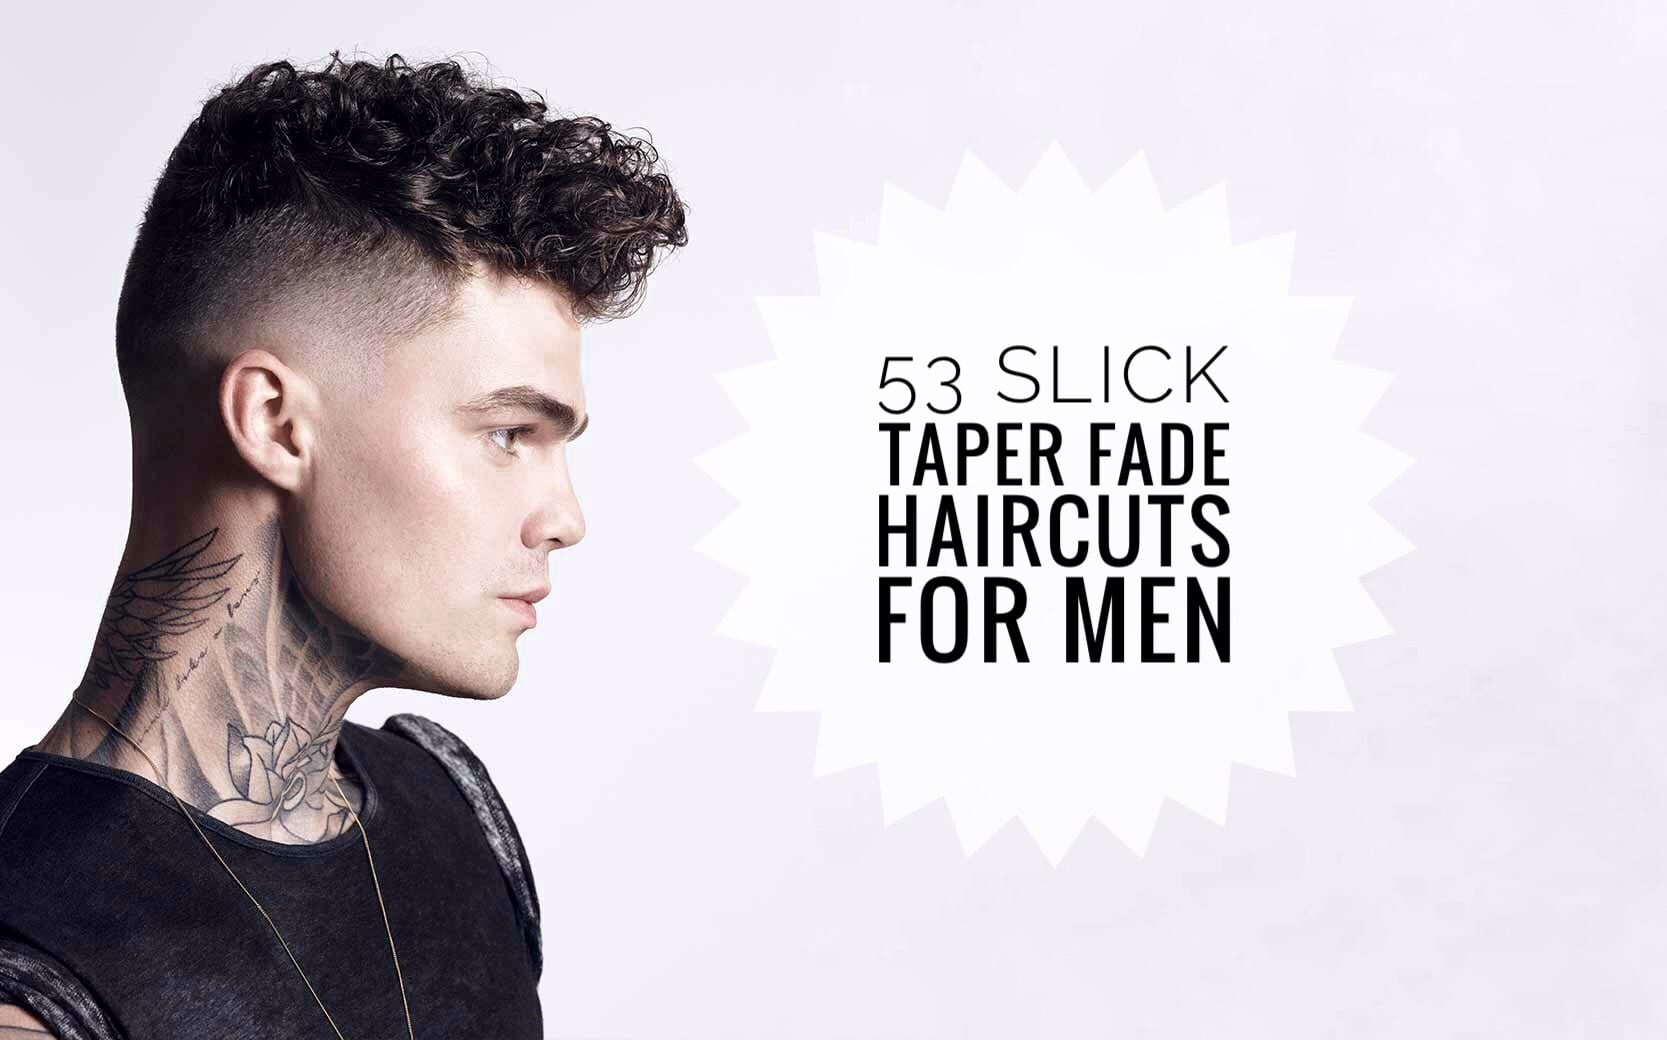 53 Slick Taper Fade Haircuts for Men - Men Hairstyles World